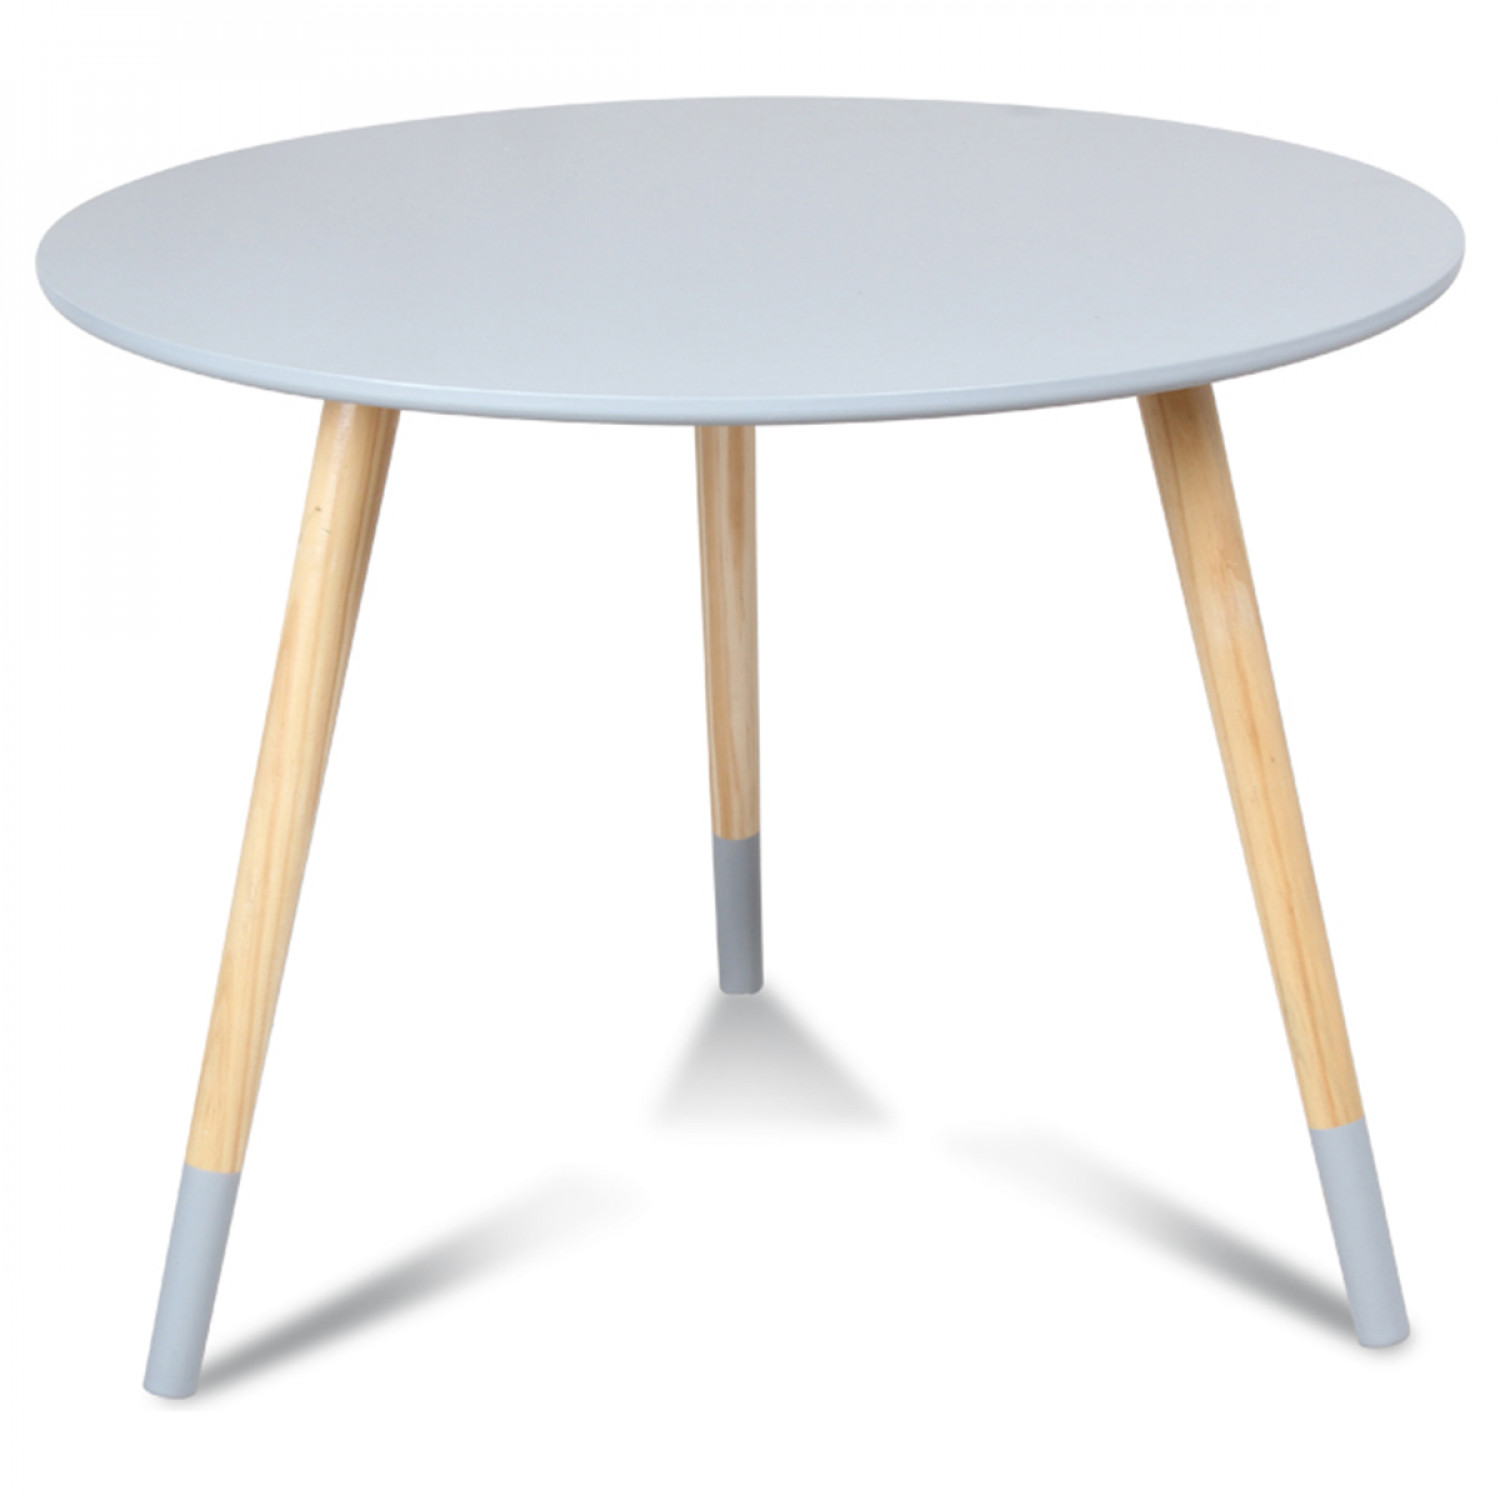 Table Basse Scandinave Blanche Table Basse Scandinave Bleu Gris BrÜdvik Diamètre 60 Cm